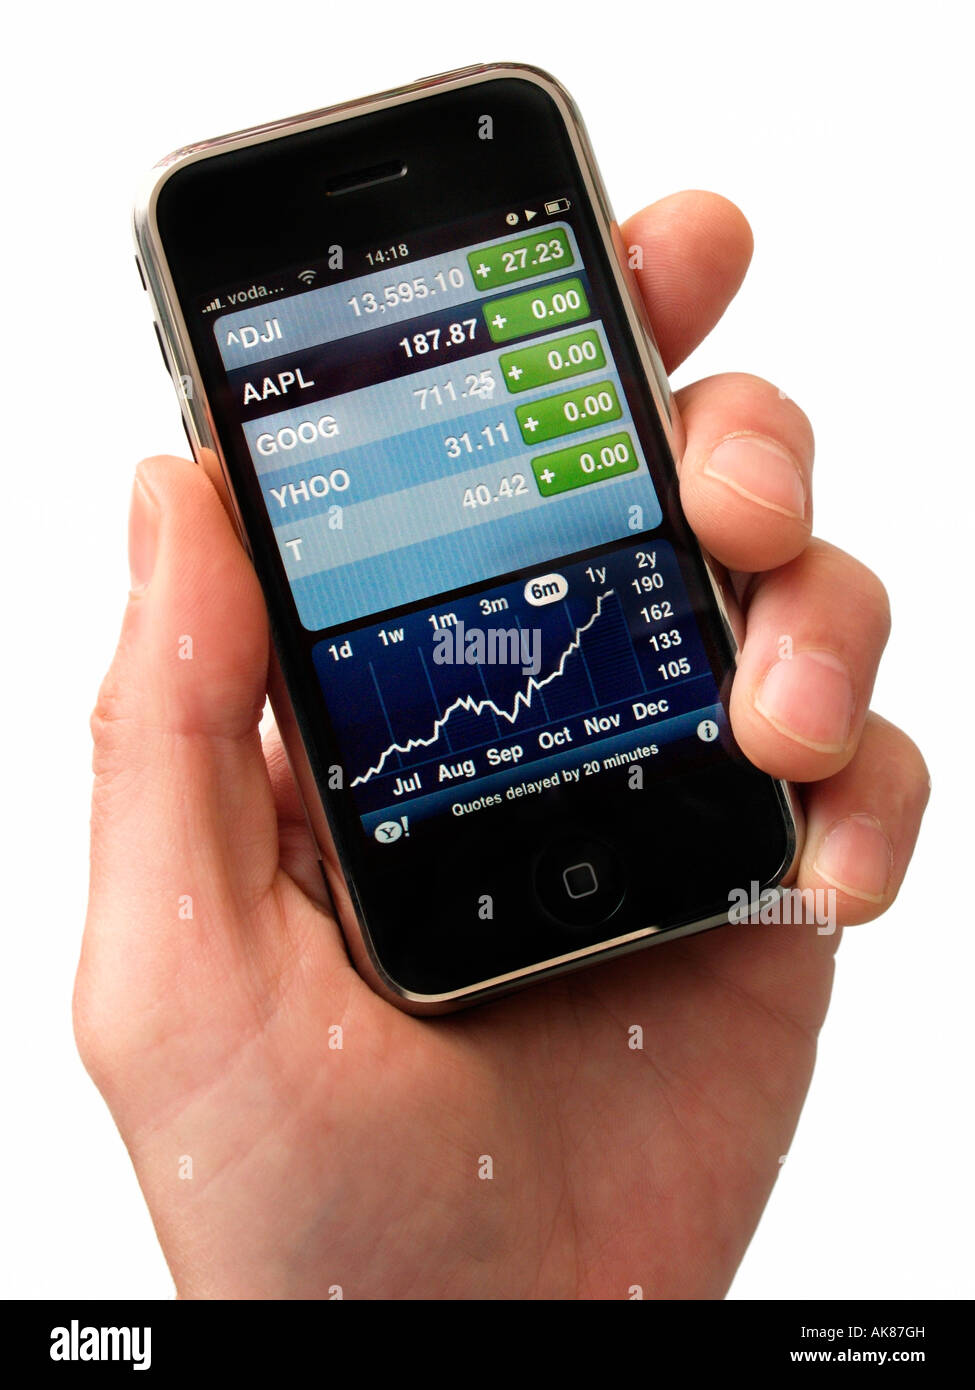 Hand holding iPhone with Apple stock AAPL performance displayed on the touchscreen white background - Stock Image